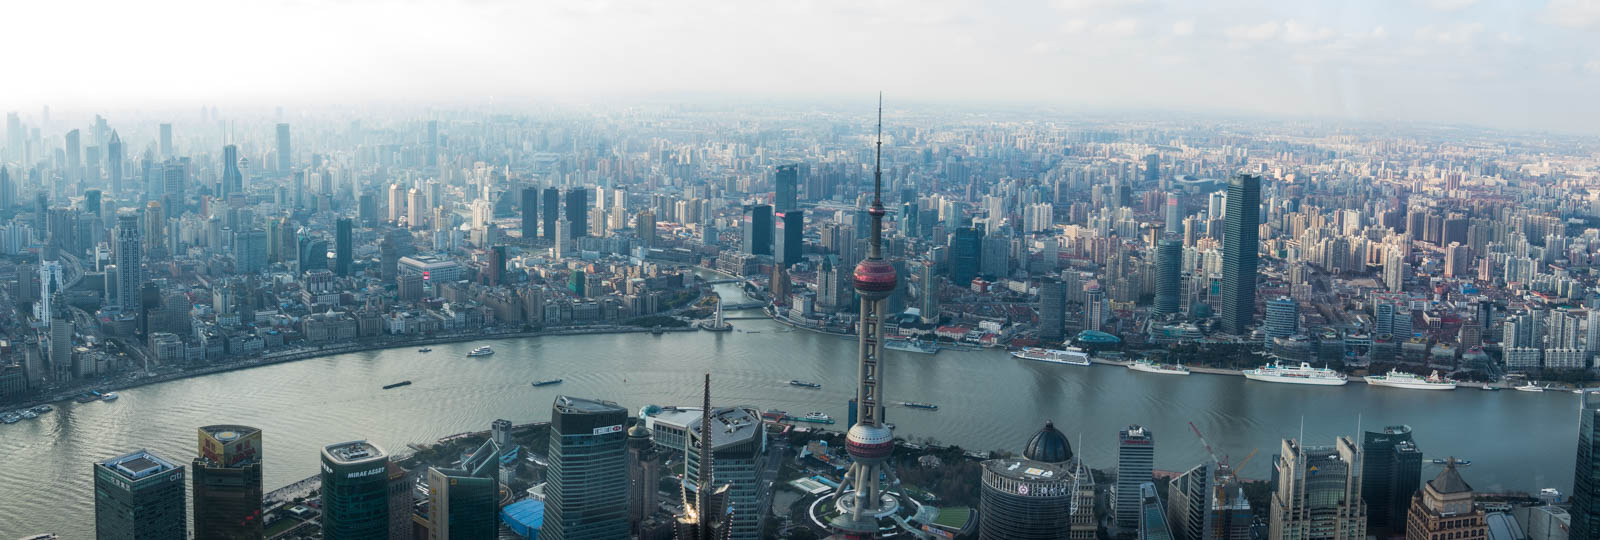 View from the top of the Shanghai World Financial Center. The Bund is across the river on the left